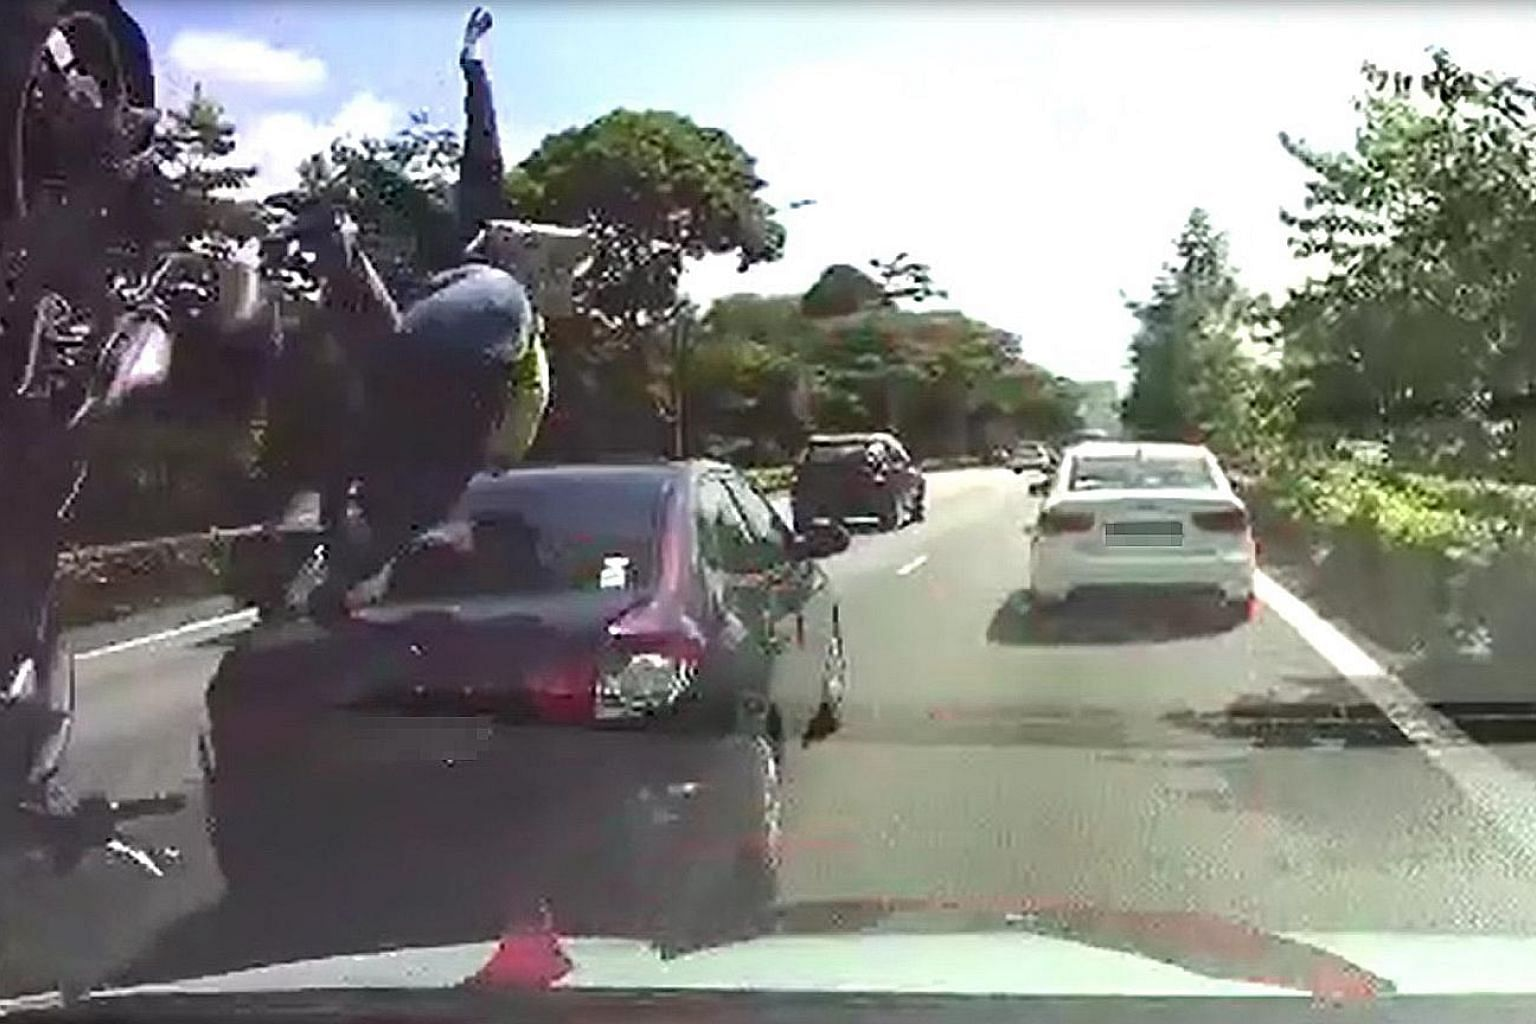 A dashcam video sent to Lianhe Wanbao showed the motorcyclist landing on the car after he collided with it. His pillion rider was flung in front of the car.